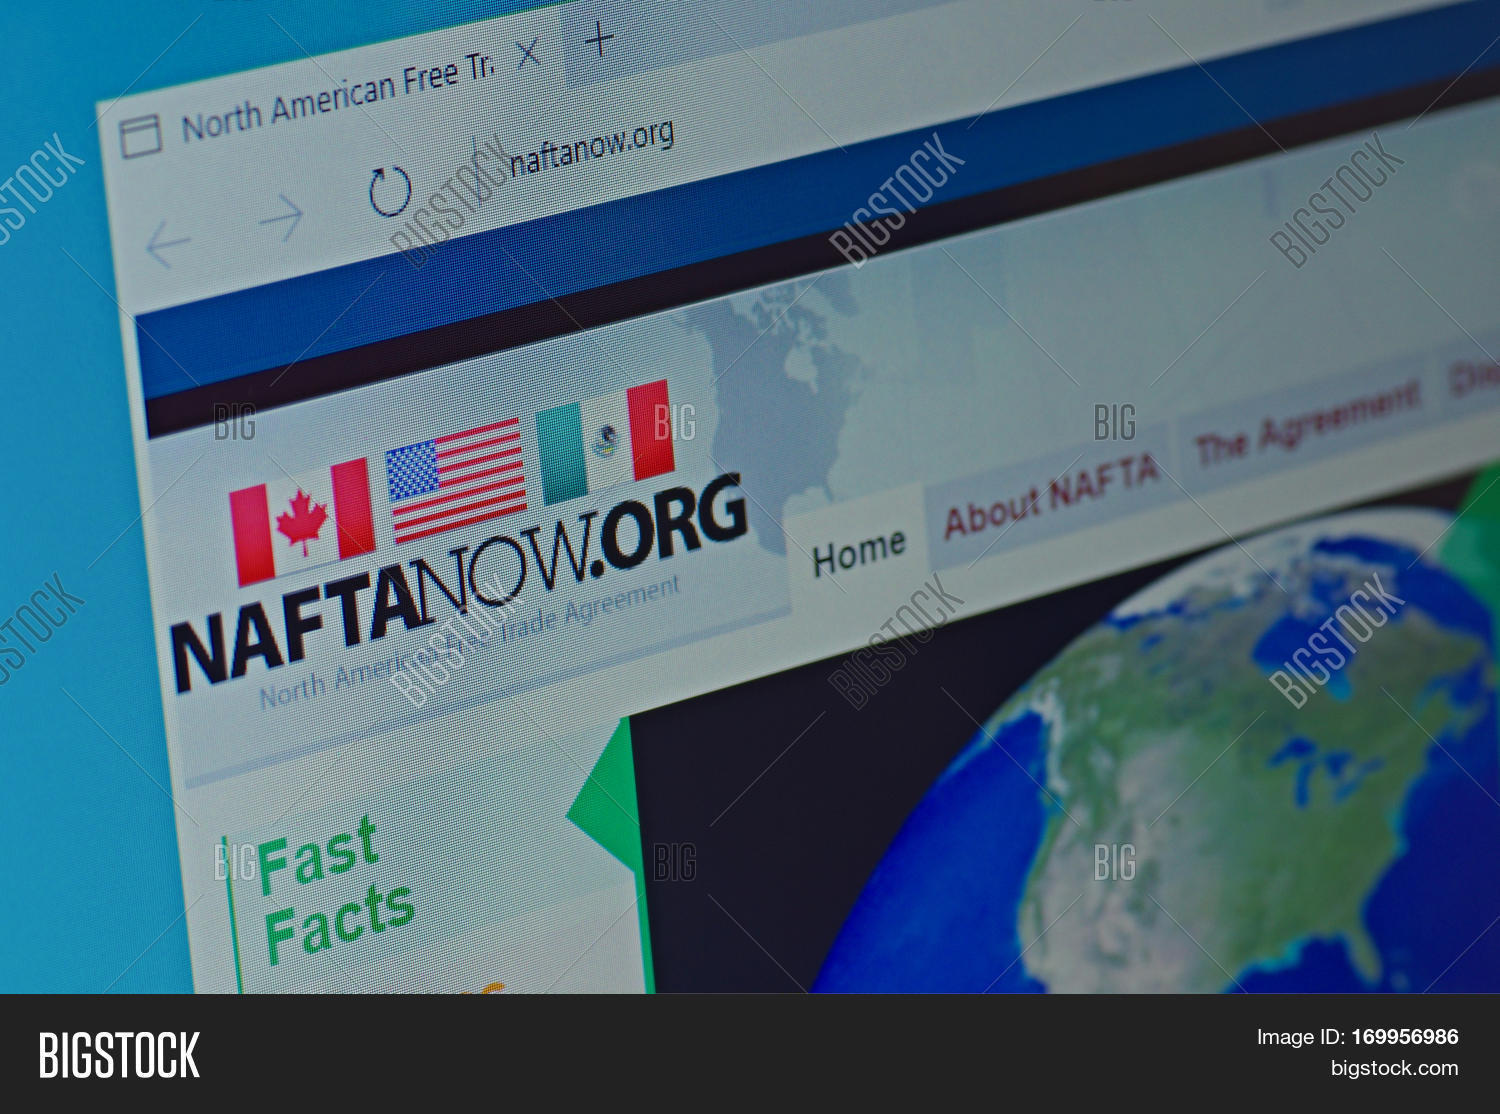 NAFTA talks: 6 rounds and just getting to core issues